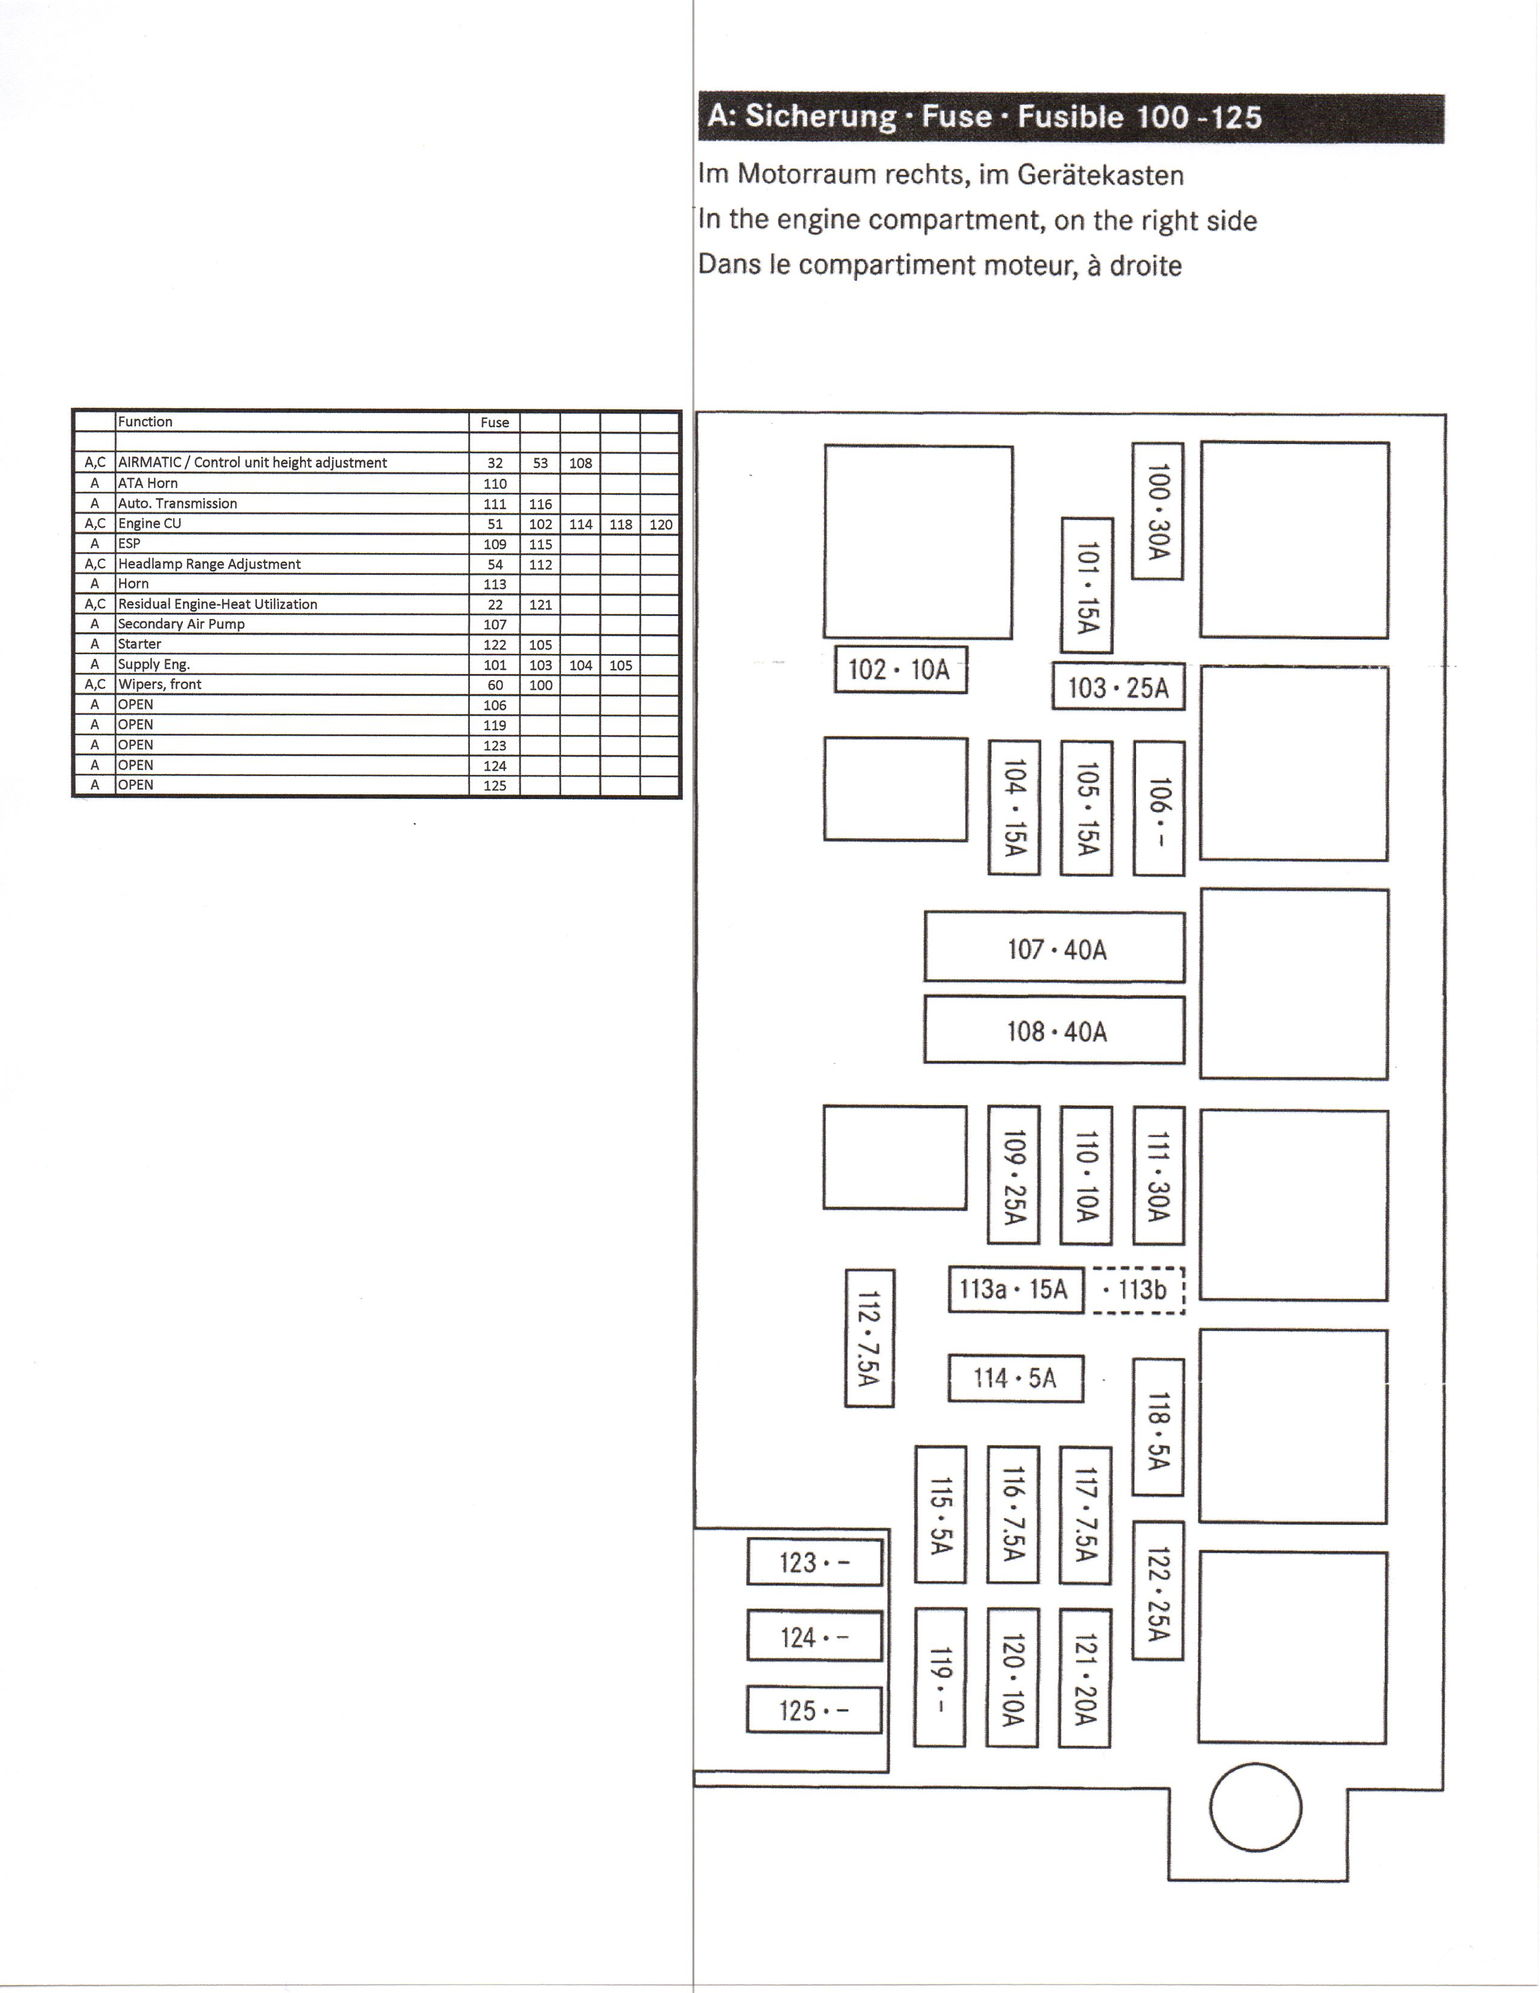 Mercedes Benz E550 Fuse Box. Mercedes. Auto Fuse Box Diagram